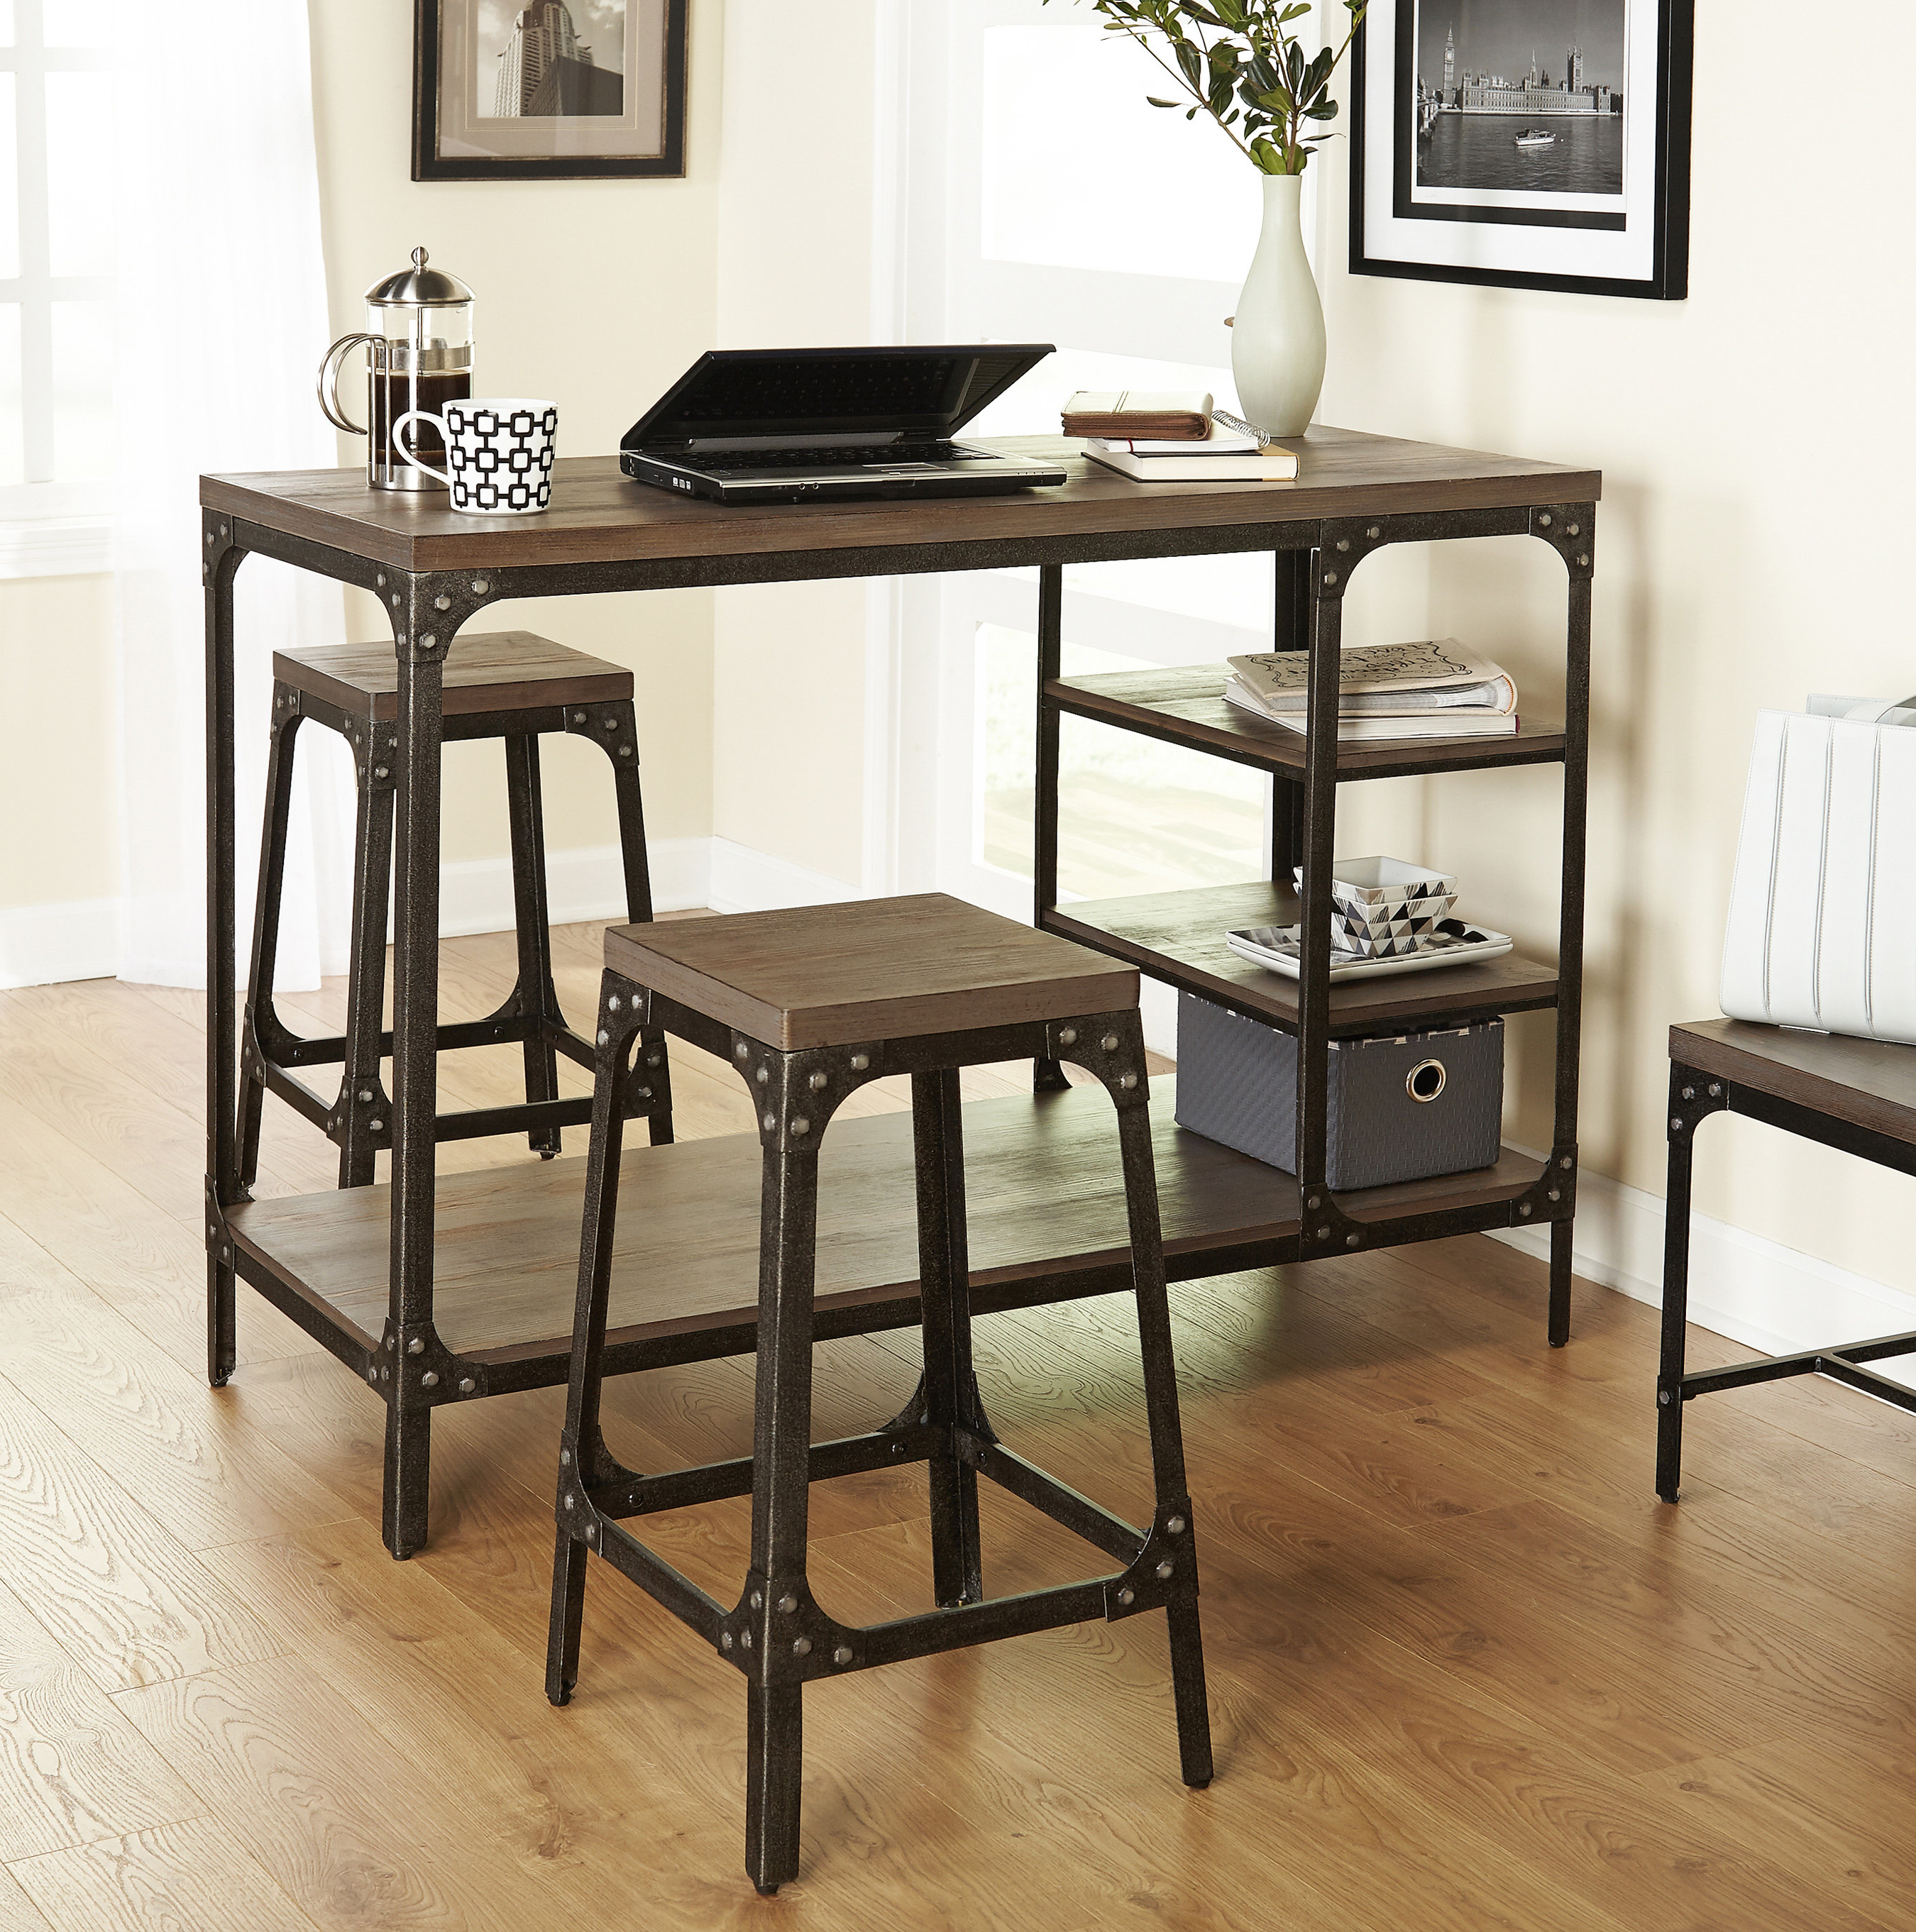 Birch Lane Within Bearden 3 Piece Dining Sets (View 14 of 25)